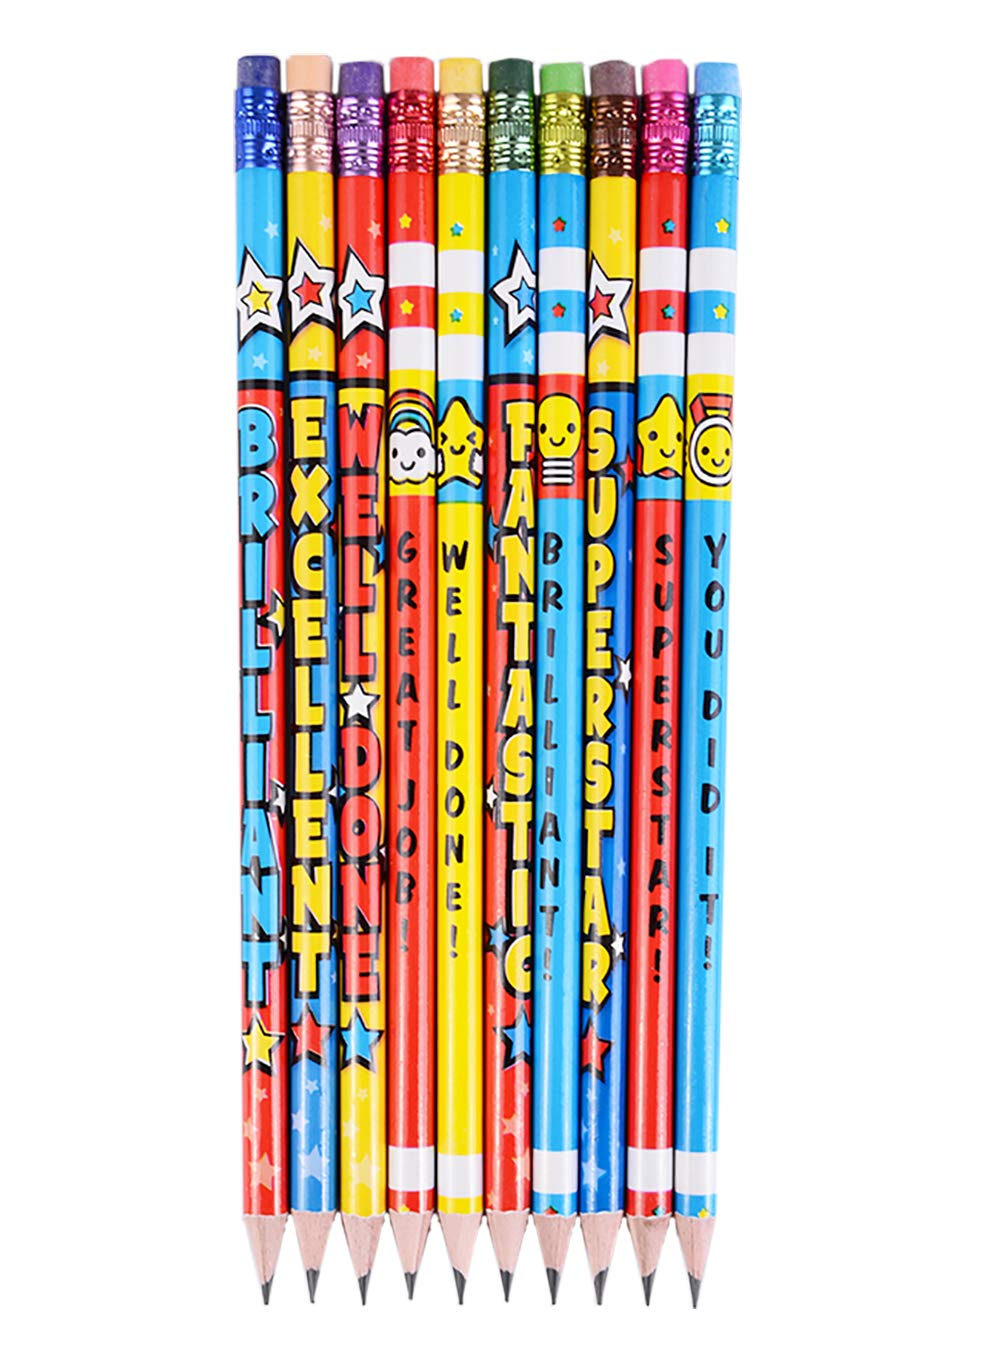 Madisi Assorted Colorful Pencils, Incentive Pencils,#2 HB, 10 Dsigns, 150 Pack, pencils bulk for kids by Madisi (Image #3)